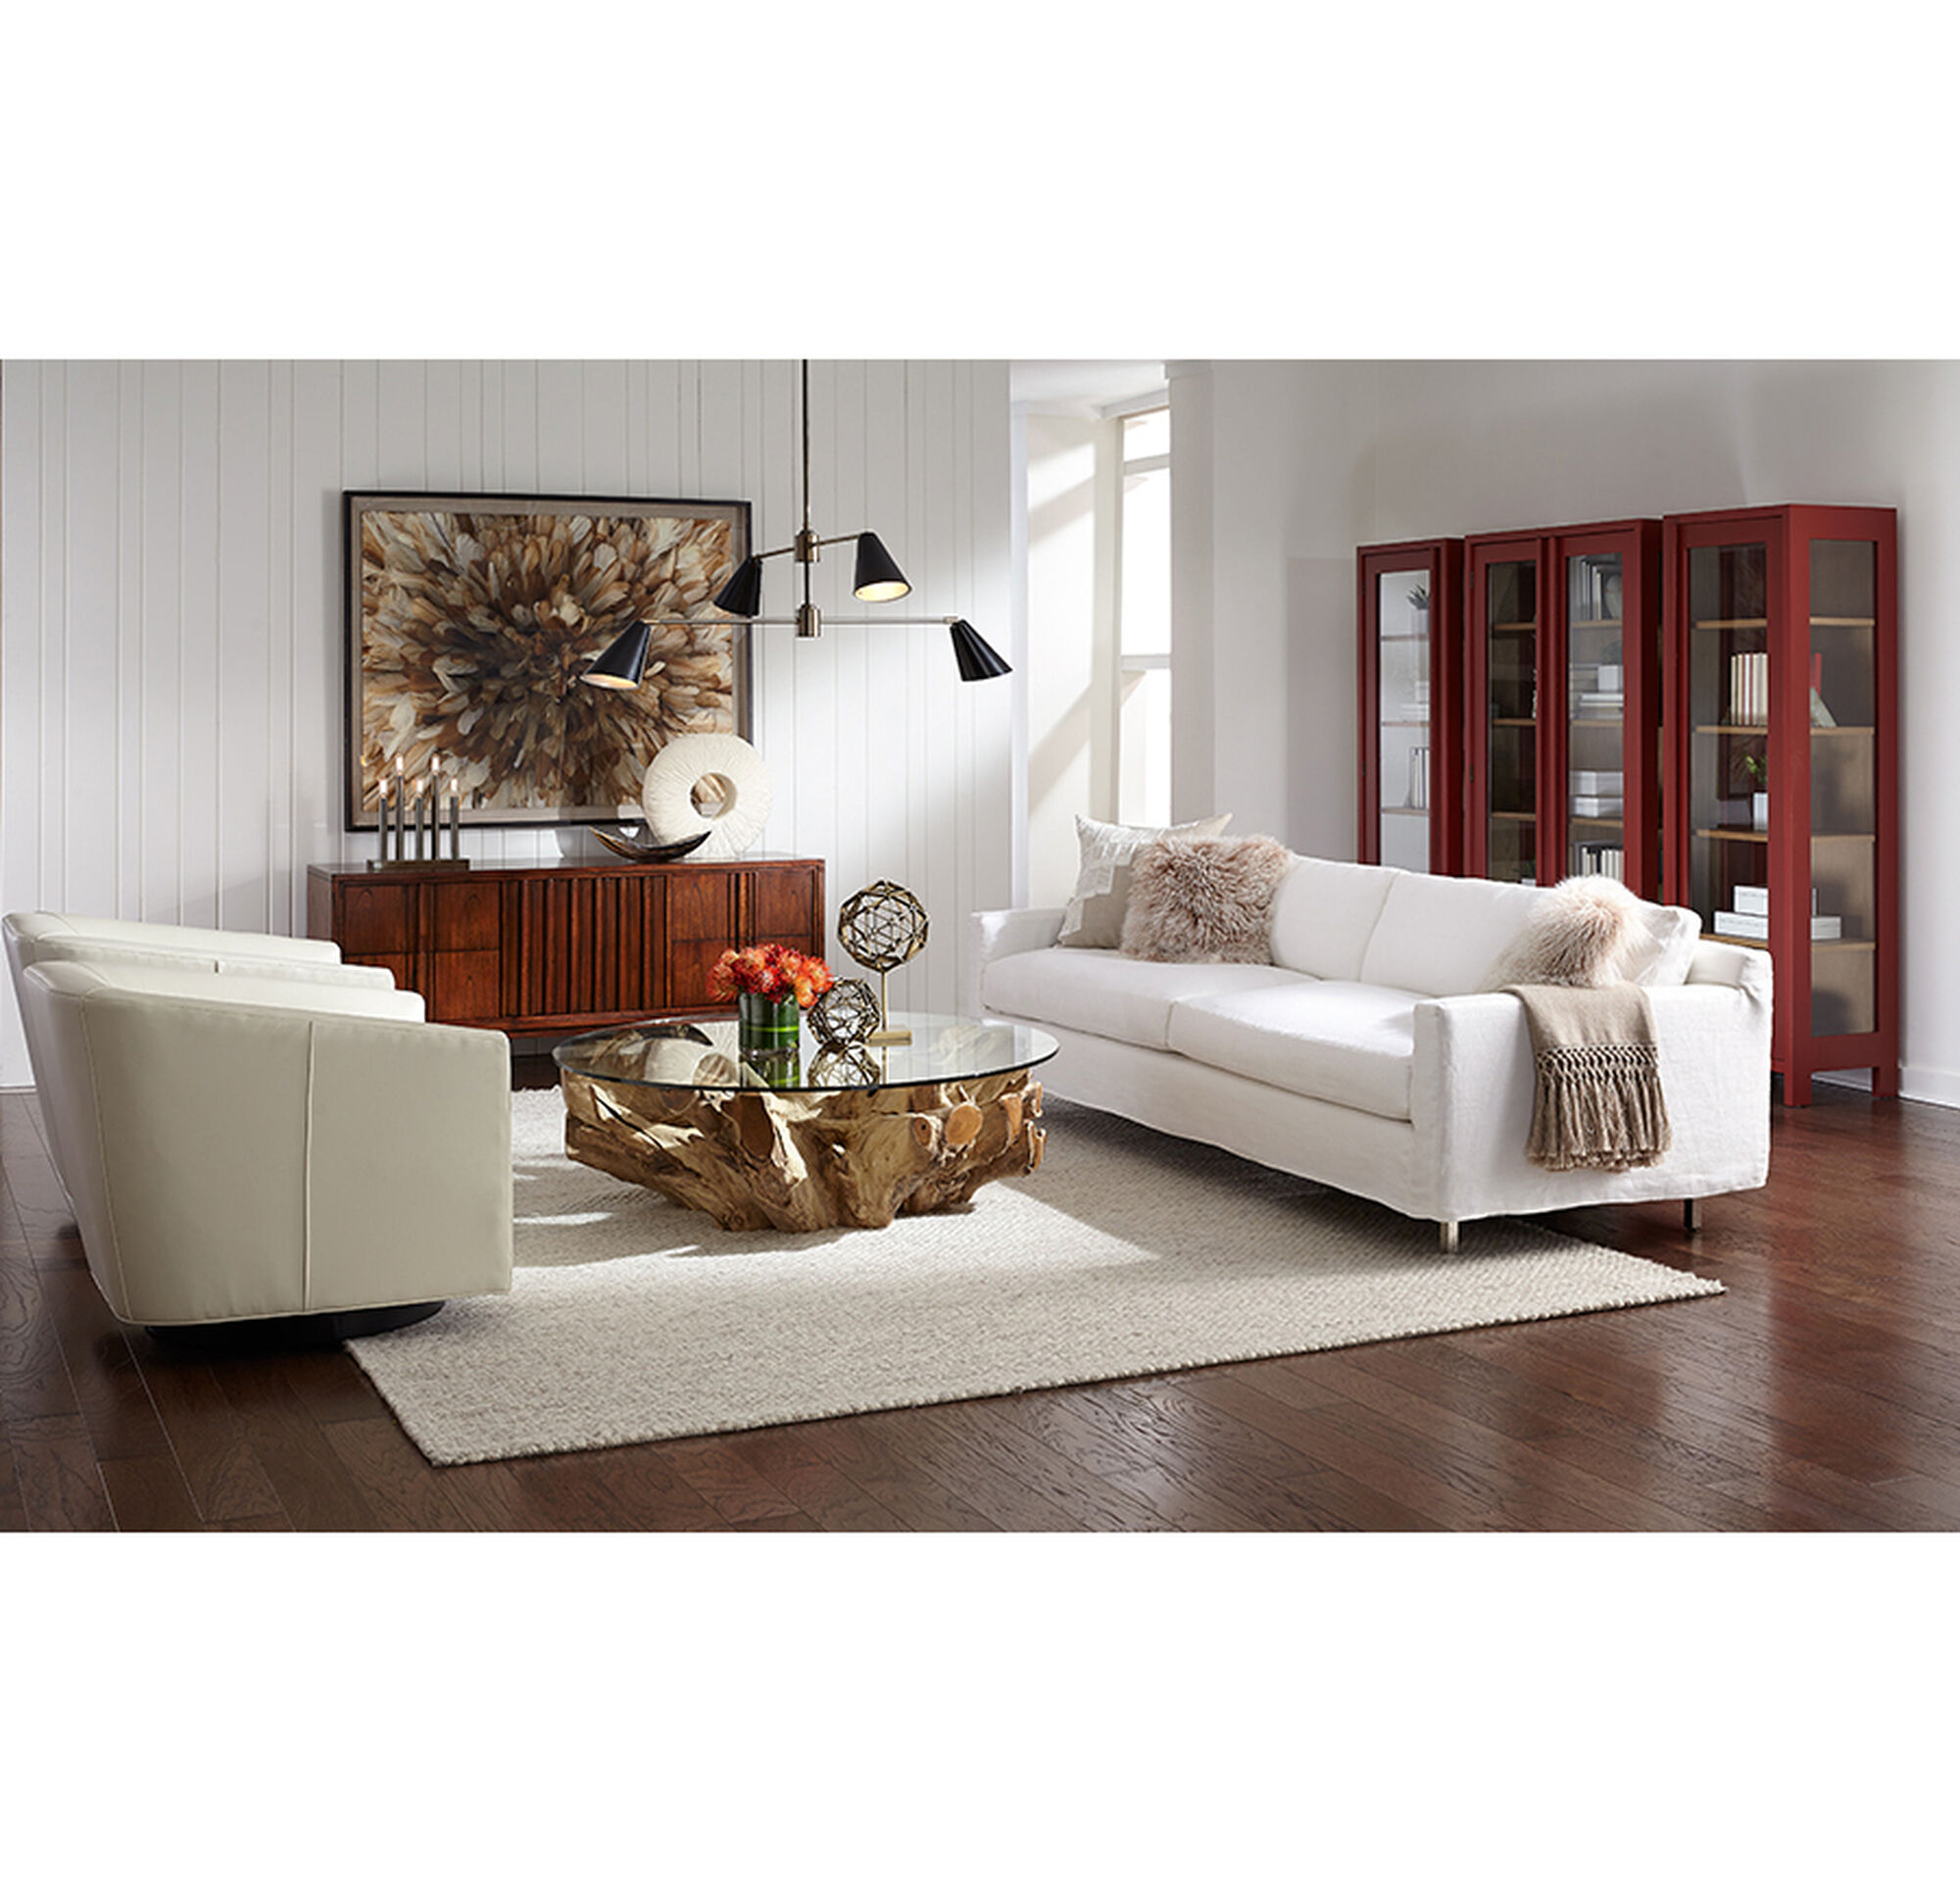 HUNTER SLIPCOVER SOFA